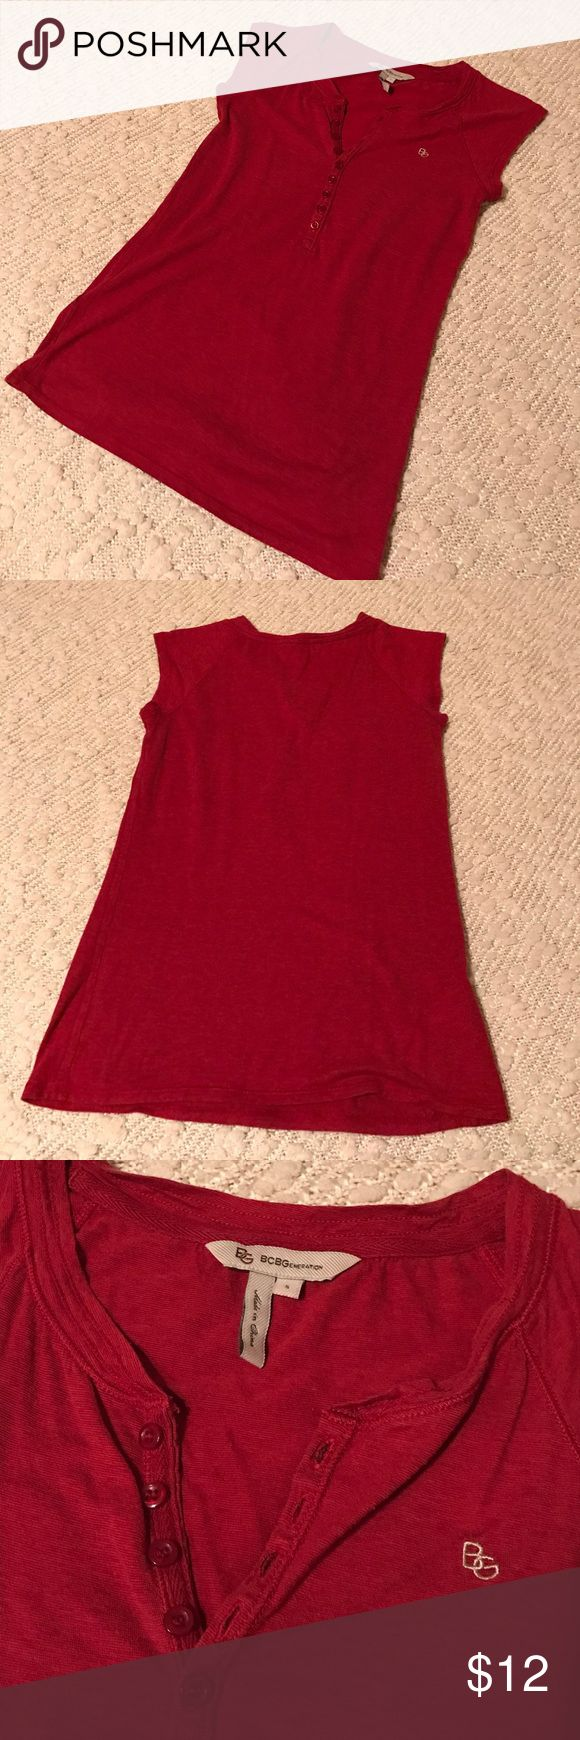 BCBGeneration Henley Tee S Cute red BCBG top!!! Size small, but best fits XS. Flawless except for one pin hole shown in last photo. BCBGeneration Tops